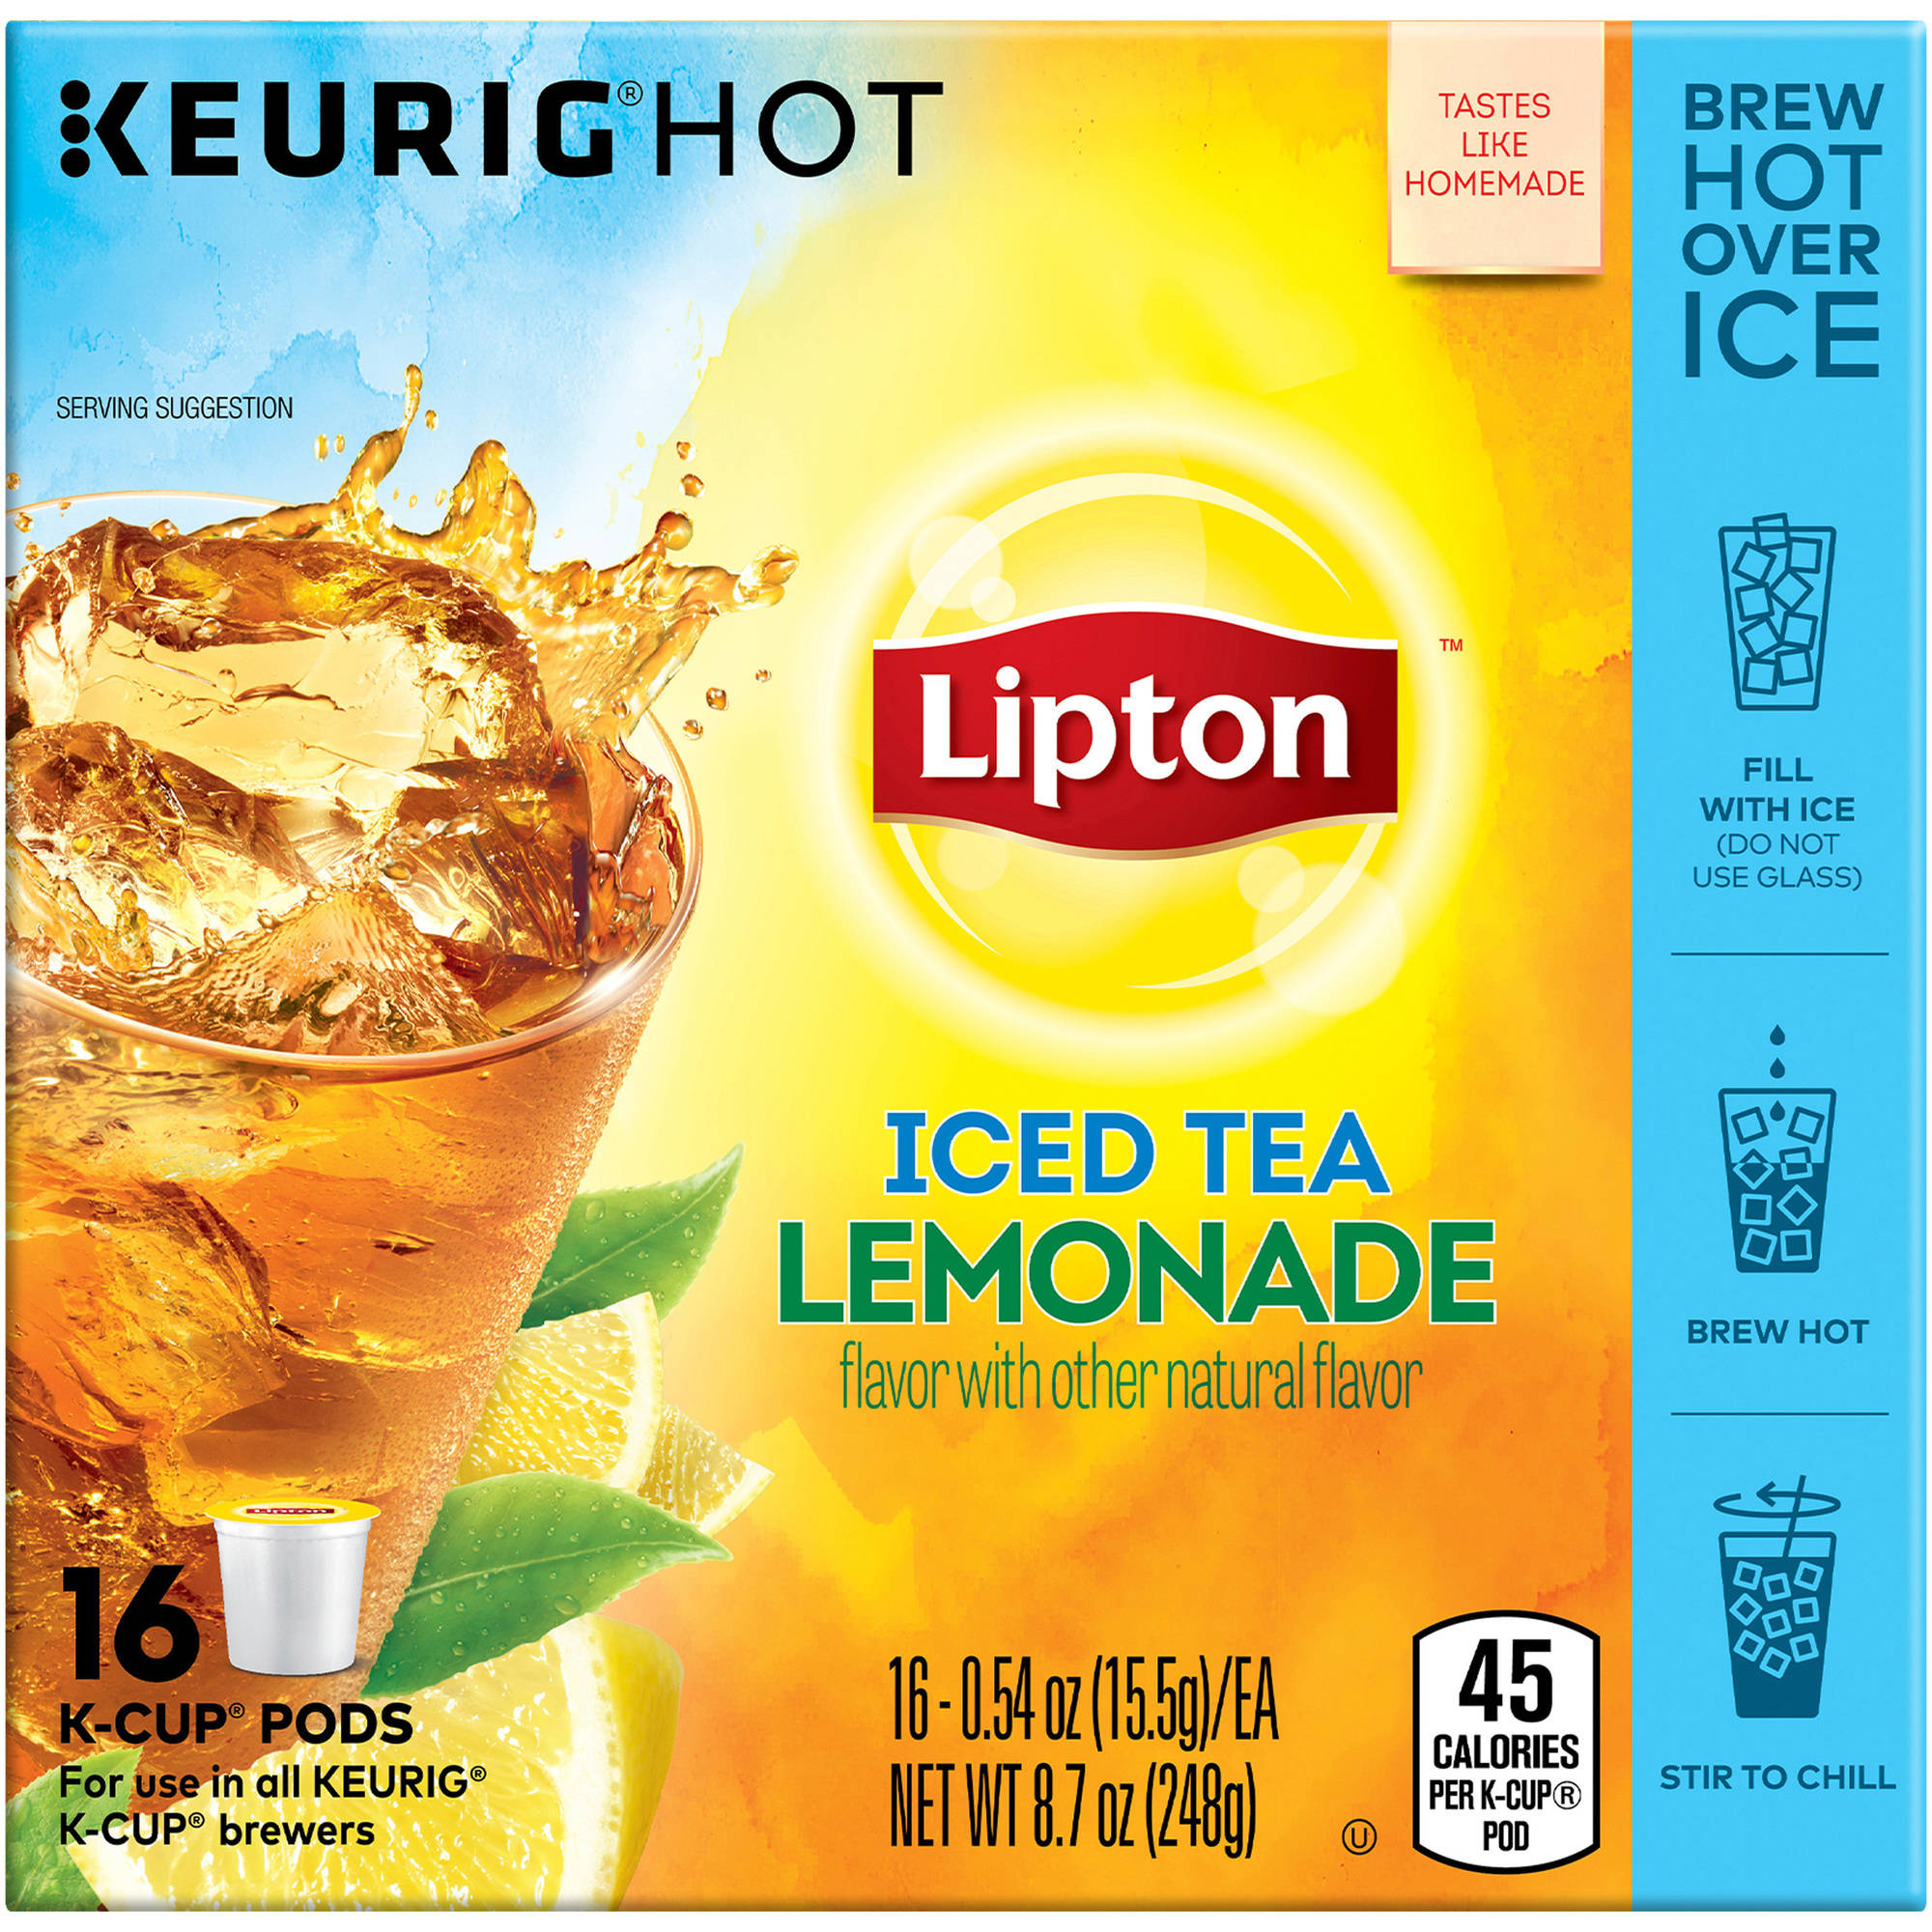 Lipton Lemonade Iced Tea K-Cup Pods, .54 oz, 16 count